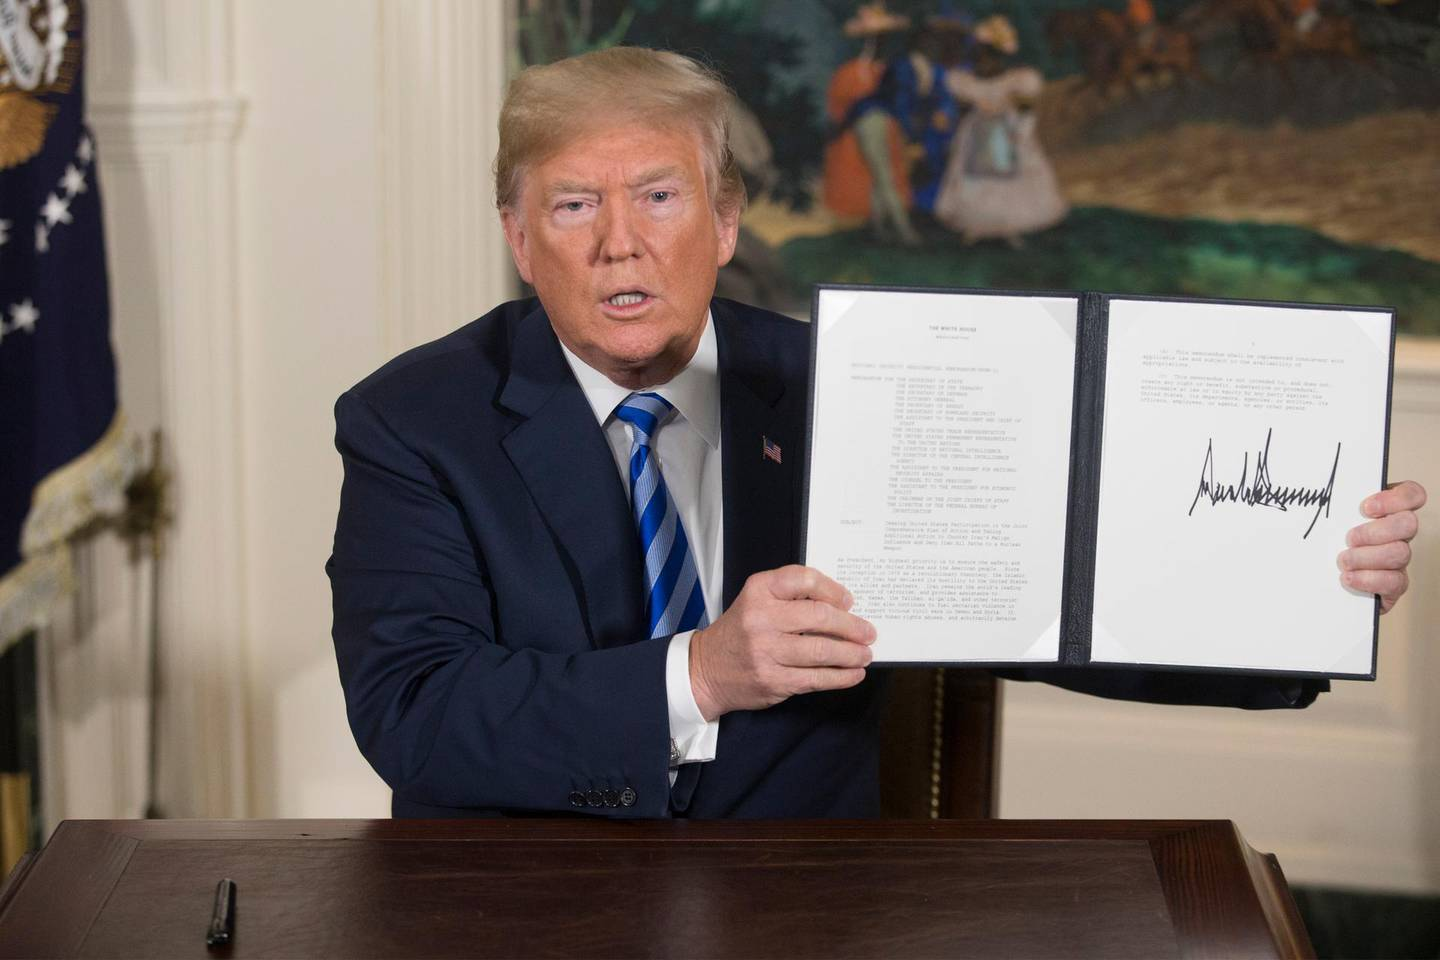 epa06720037 US President Donald J. Trump holds up a presidential memorandum he just signed in the Diplomatic Reception Room of the White House in Washington, DC, USA, 08 May 2018. Trump announces plans to pull out of Iran nuclear deal. Trump announced that he will reimpose sanctions that had been waived under the Iran nuclear deal. Five nations including the United States worked out a deal with Iran in 2015 that withdrew sanctions.  EPA/MICHAEL REYNOLDS